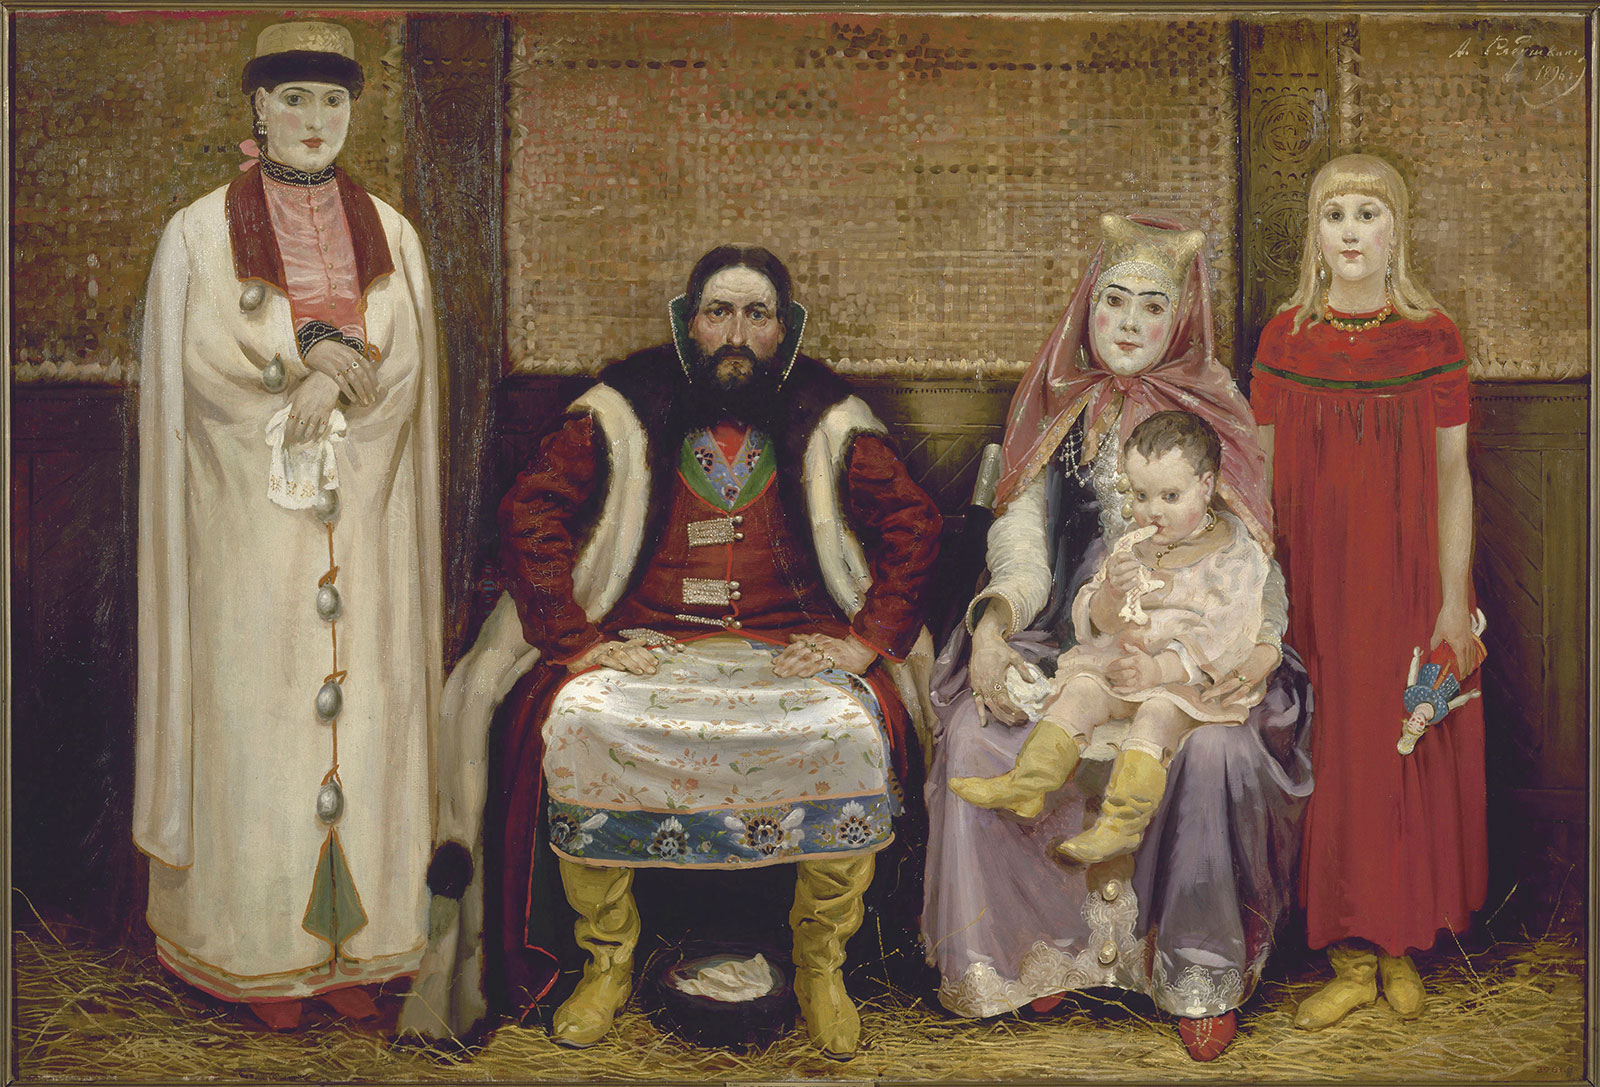 The rules of family life in Russia